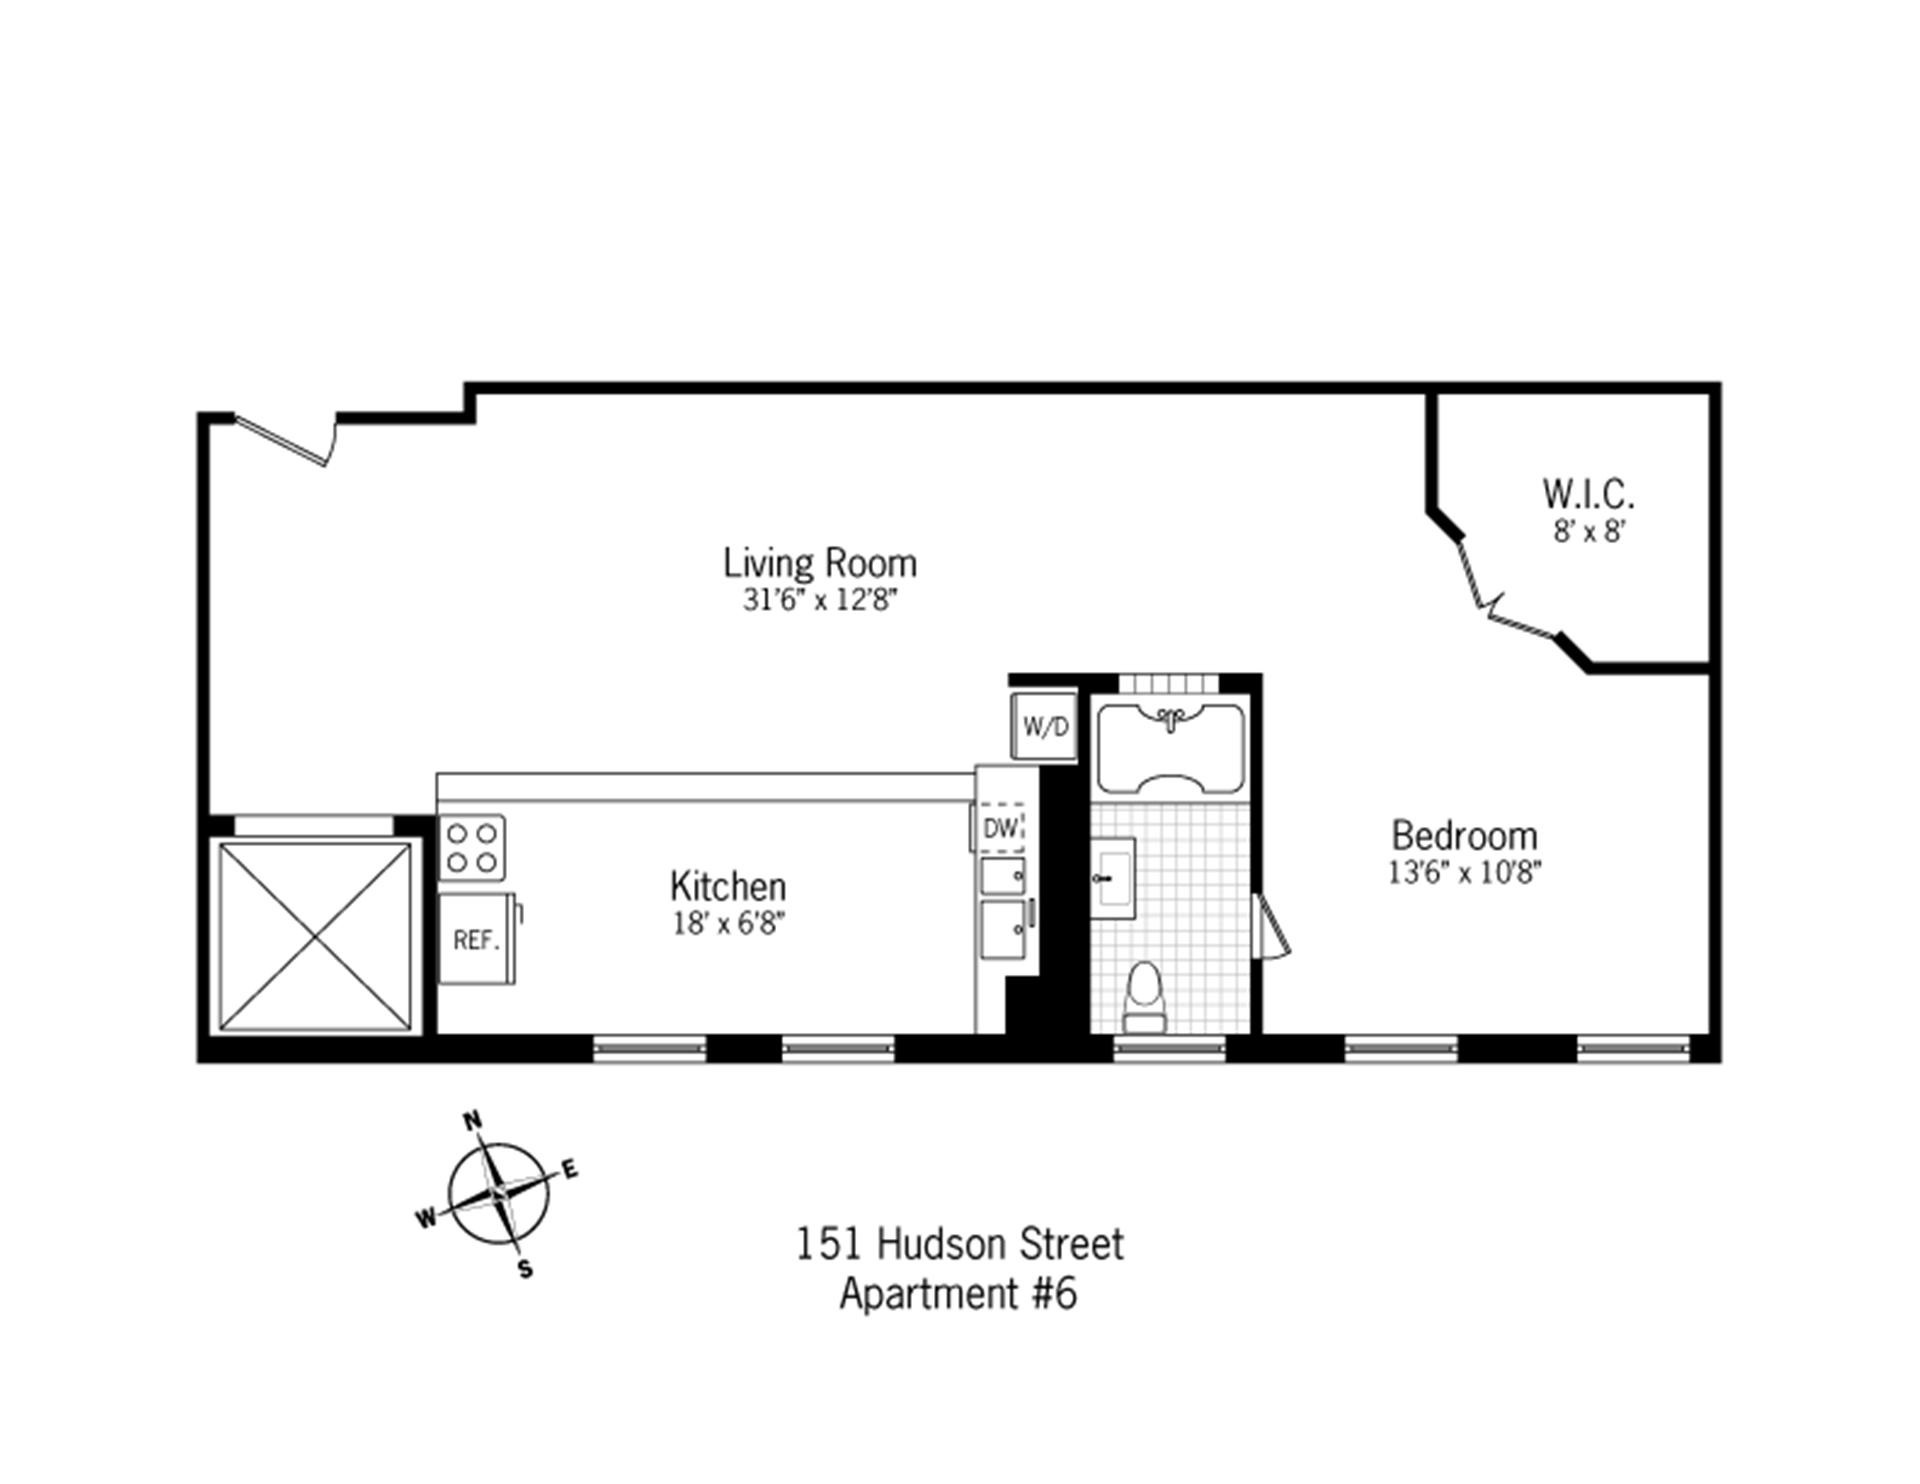 New York City Kitchen Design Layout (Image 8 of 16)